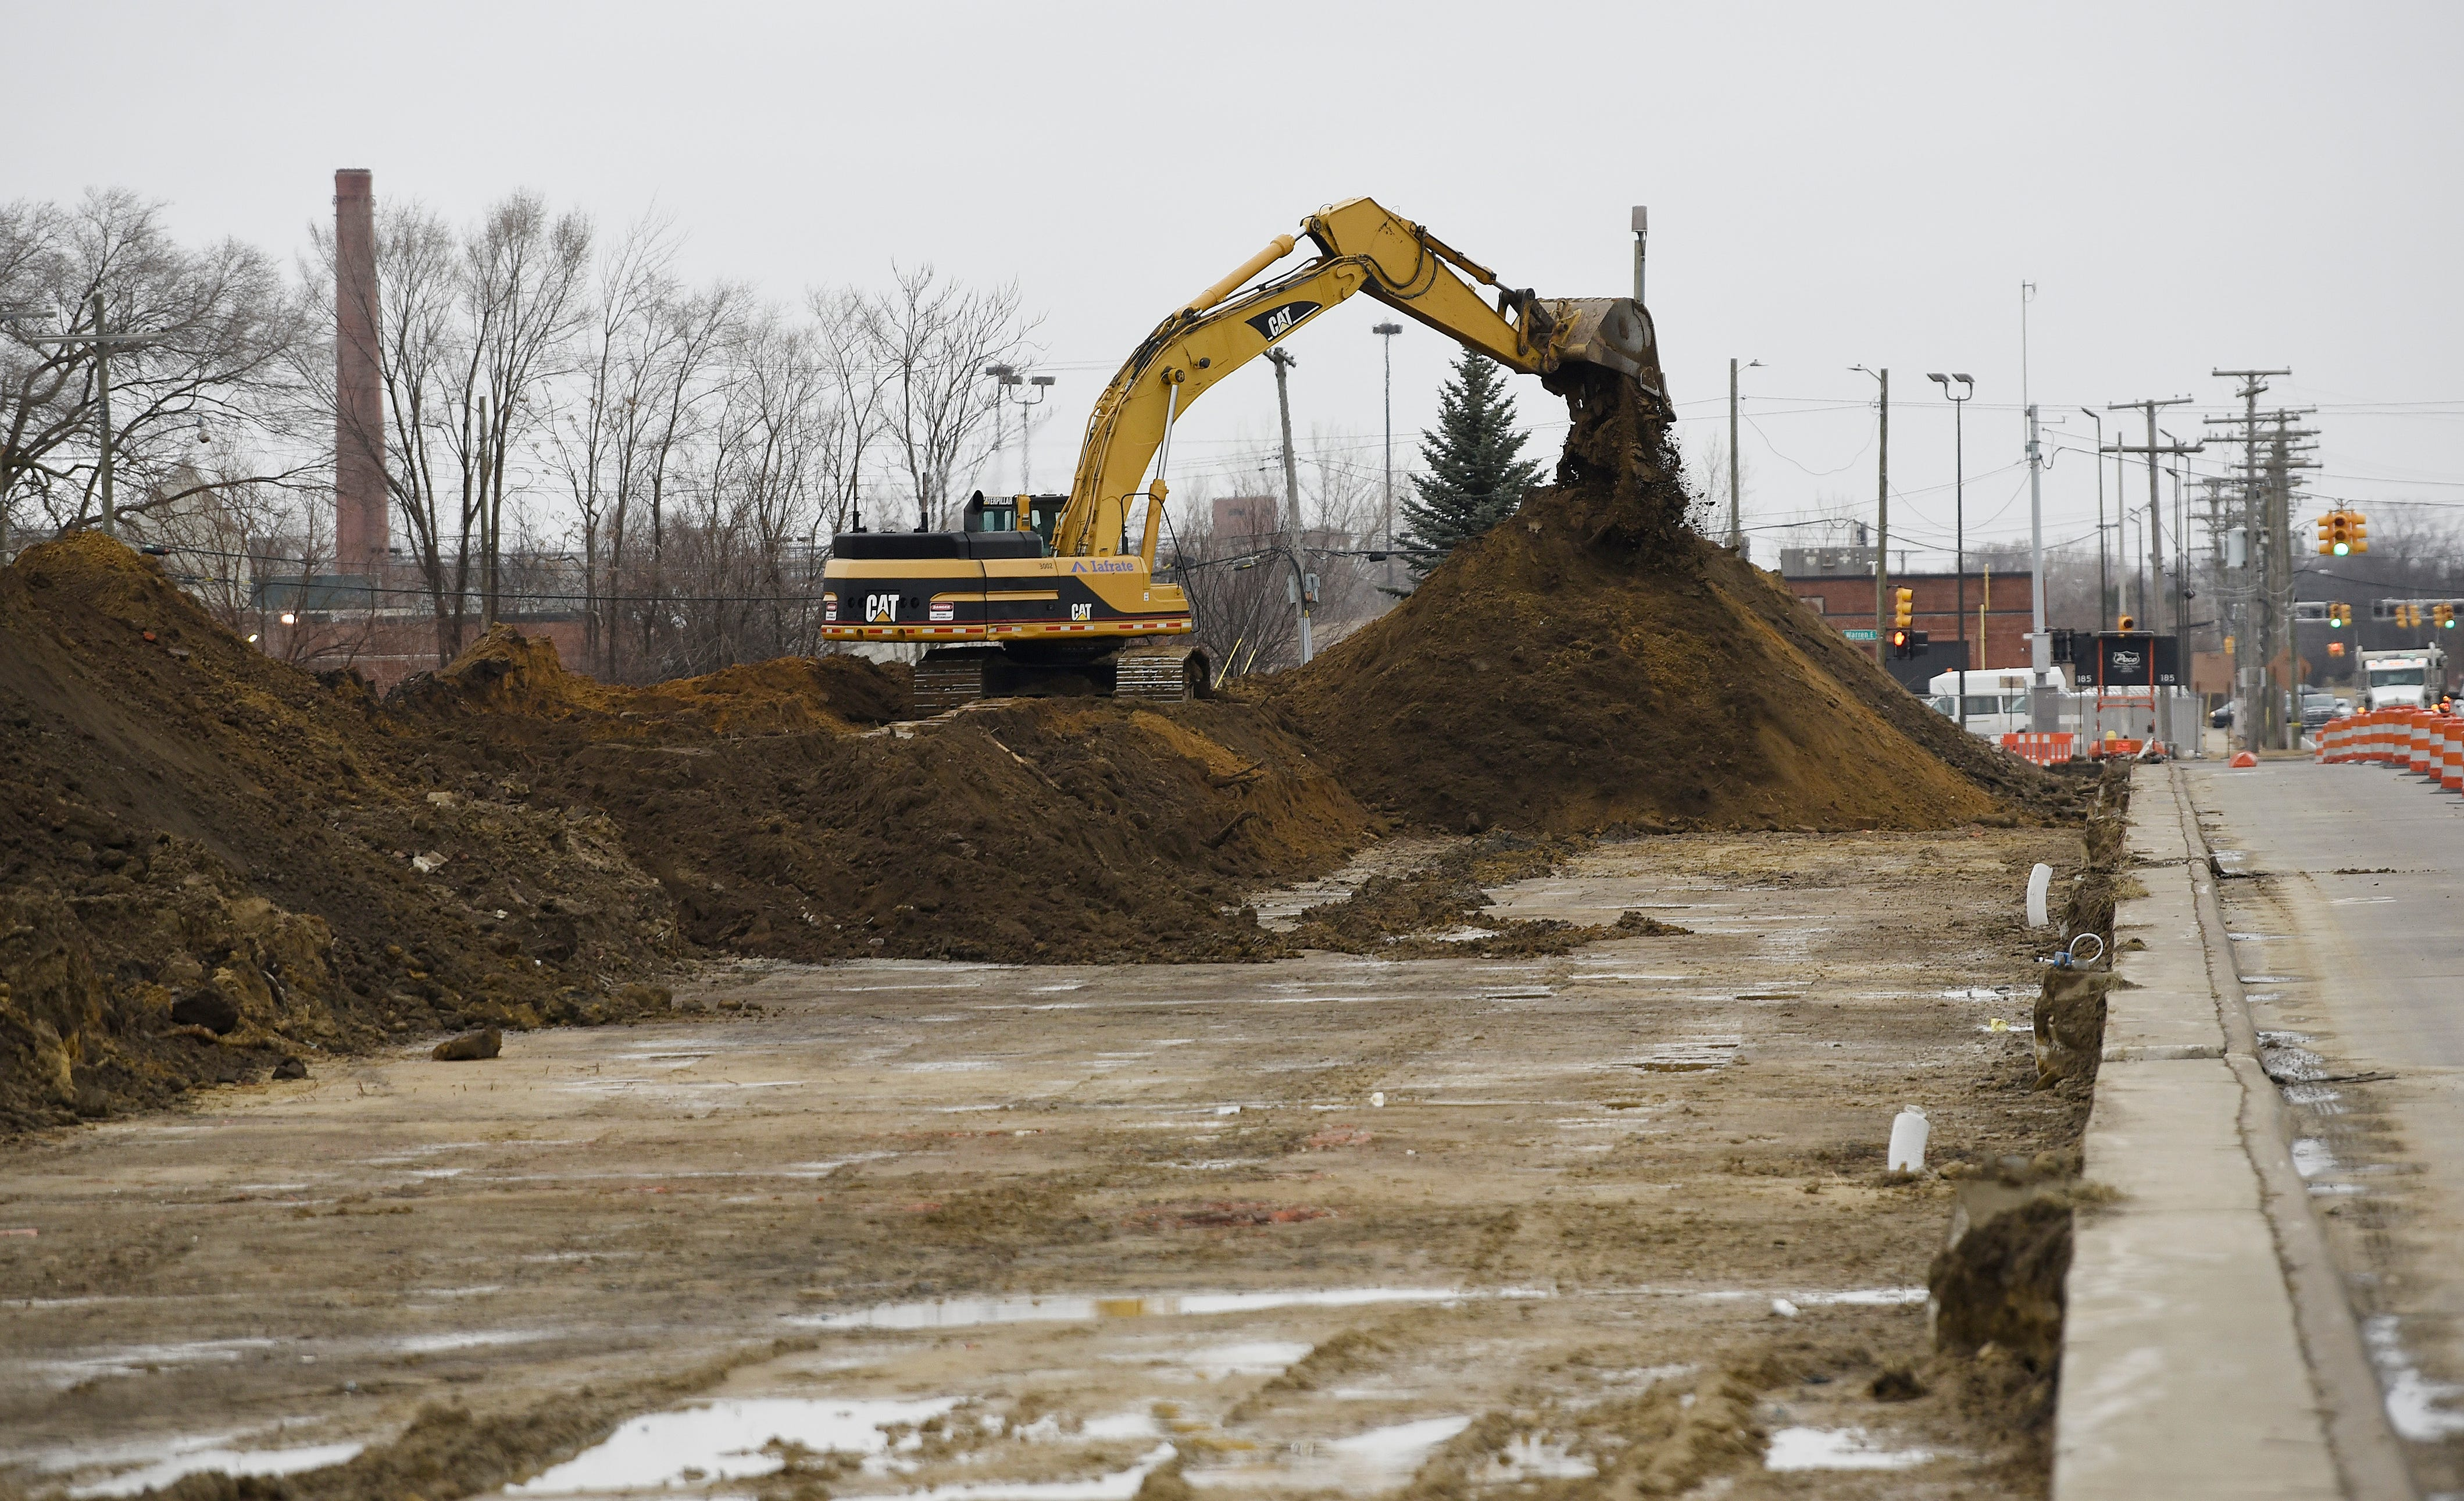 A operator from Iafrate Construction Co. uses a excavator to remove soil from land on St. Jean just south of East Warren in Detroit, Friday, March 15. The land is part of the 200 acres that the city needs to acquire for the proposed Fiat Chrysler Mack Avenue Assembly complex.